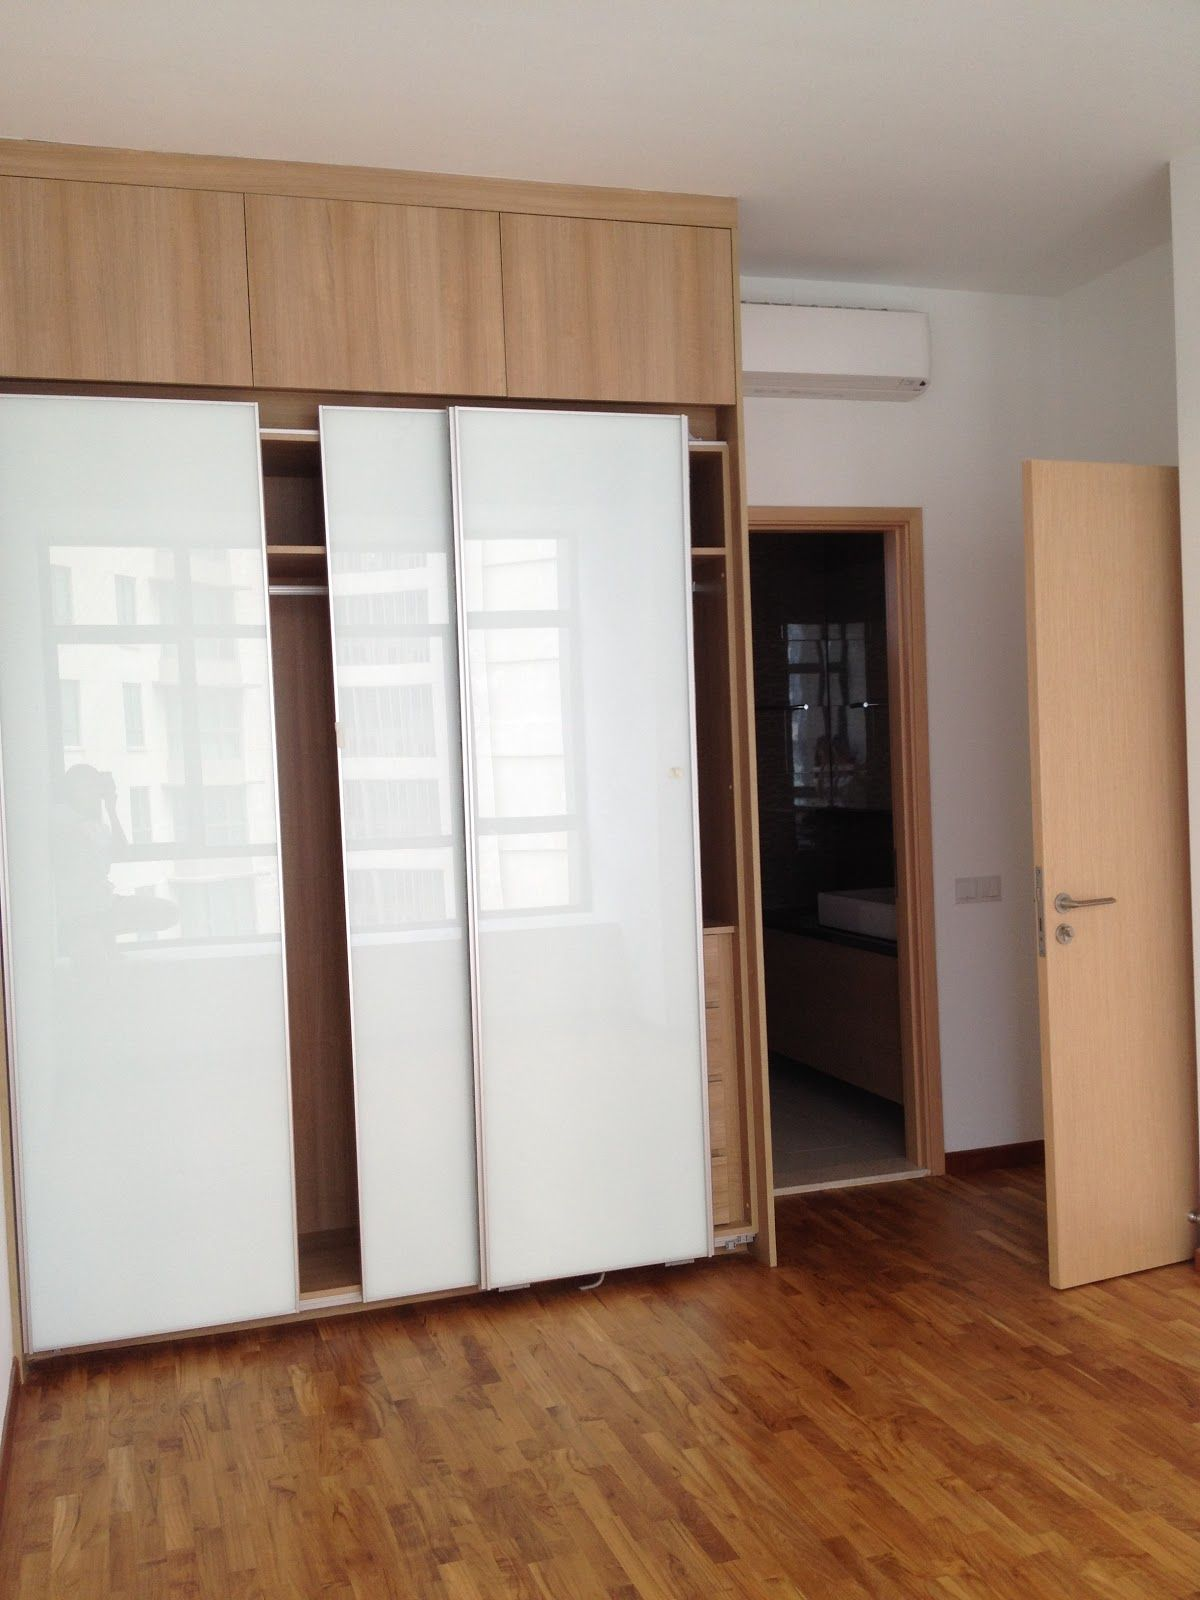 White Bedroom Wardrobes Glorious White Glozzy Sliding Doors Built In Wardrobe On